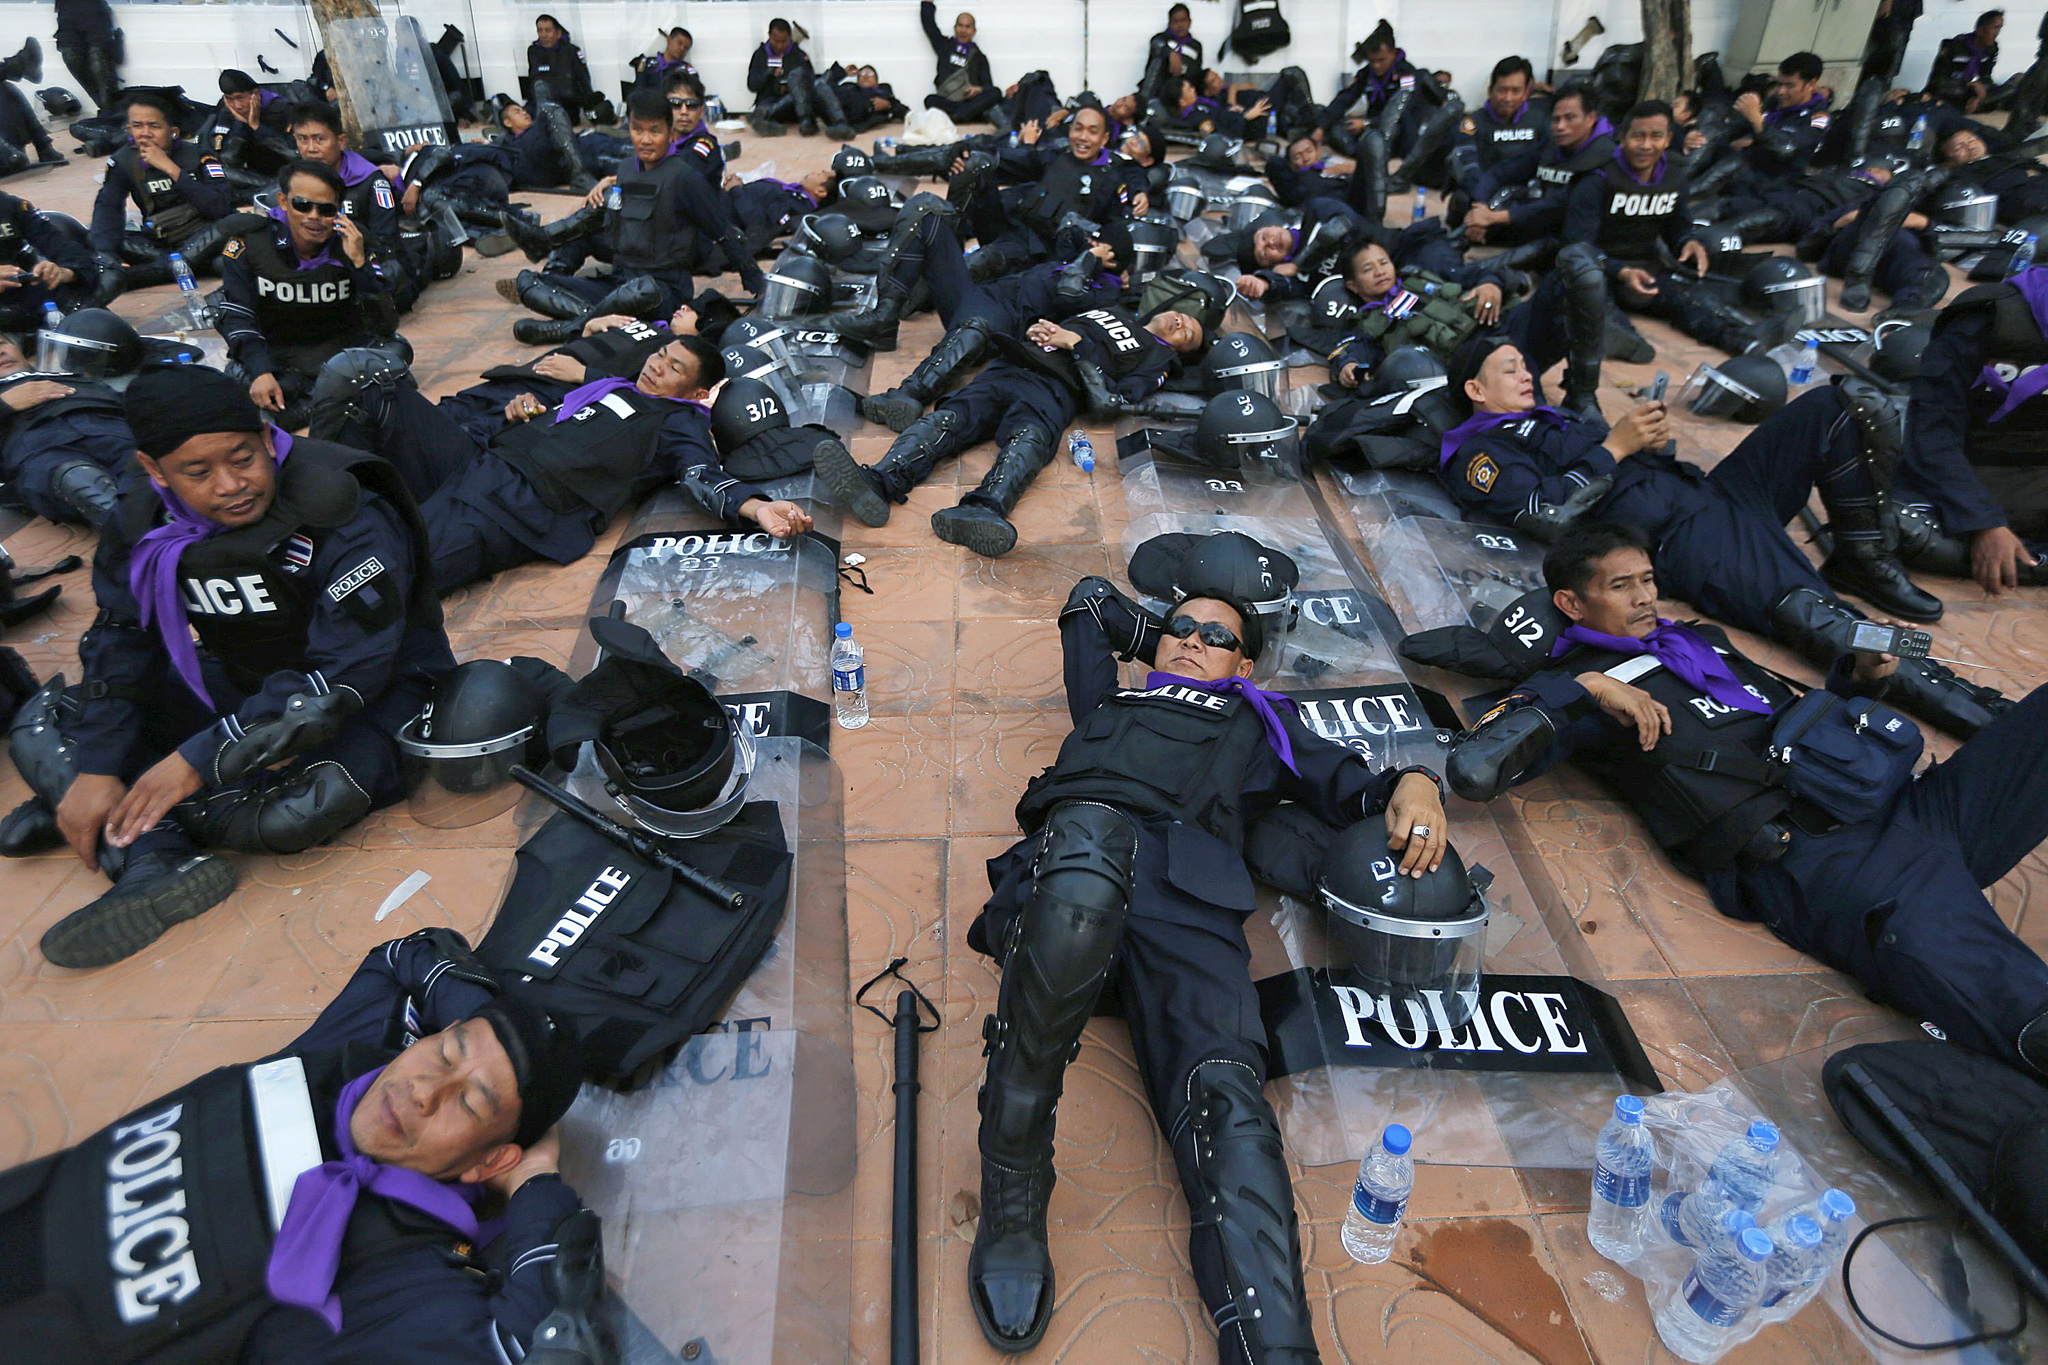 Riot police take a rest with their equipment before moving into anti-government encampment near the Government House in central Bangkok...Riot police take a rest with their equipment before moving into anti-government encampment near the Government House in central Bangkok February 14, 2014. Thousands of Thai riot police were deployed on Friday to seize back protest sites around government buildings in Bangkok that have been occupied for months by demonstrators seeking to topple Prime Minister Yingluck Shinawatra.  REUTERS/Damir Sagolj